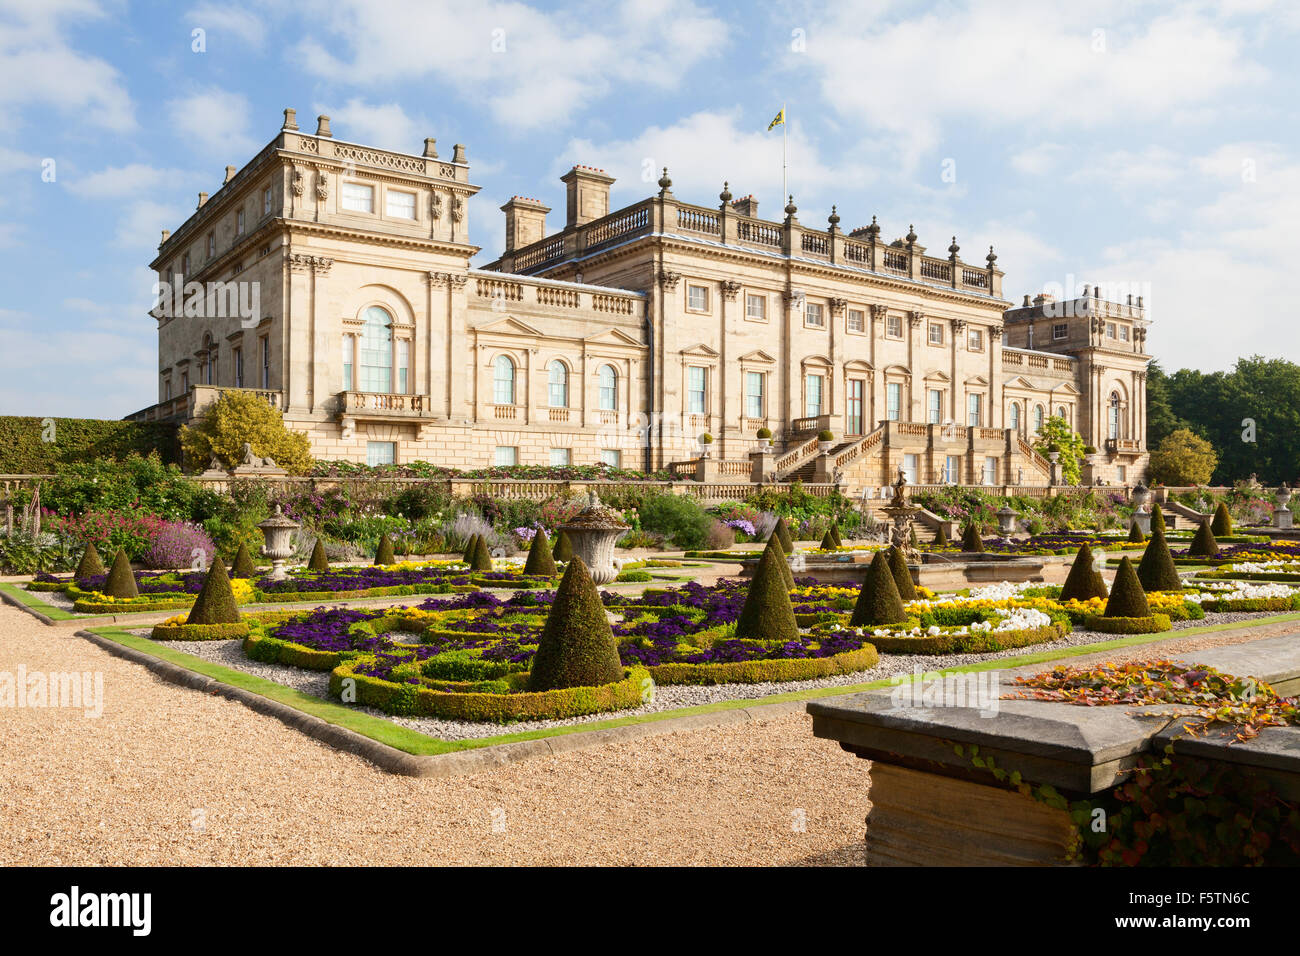 Stock Photo   The Terrace Garden At Harewood House In West Yorkshire, UK.  One Of The Ten Treasure Houses Of England